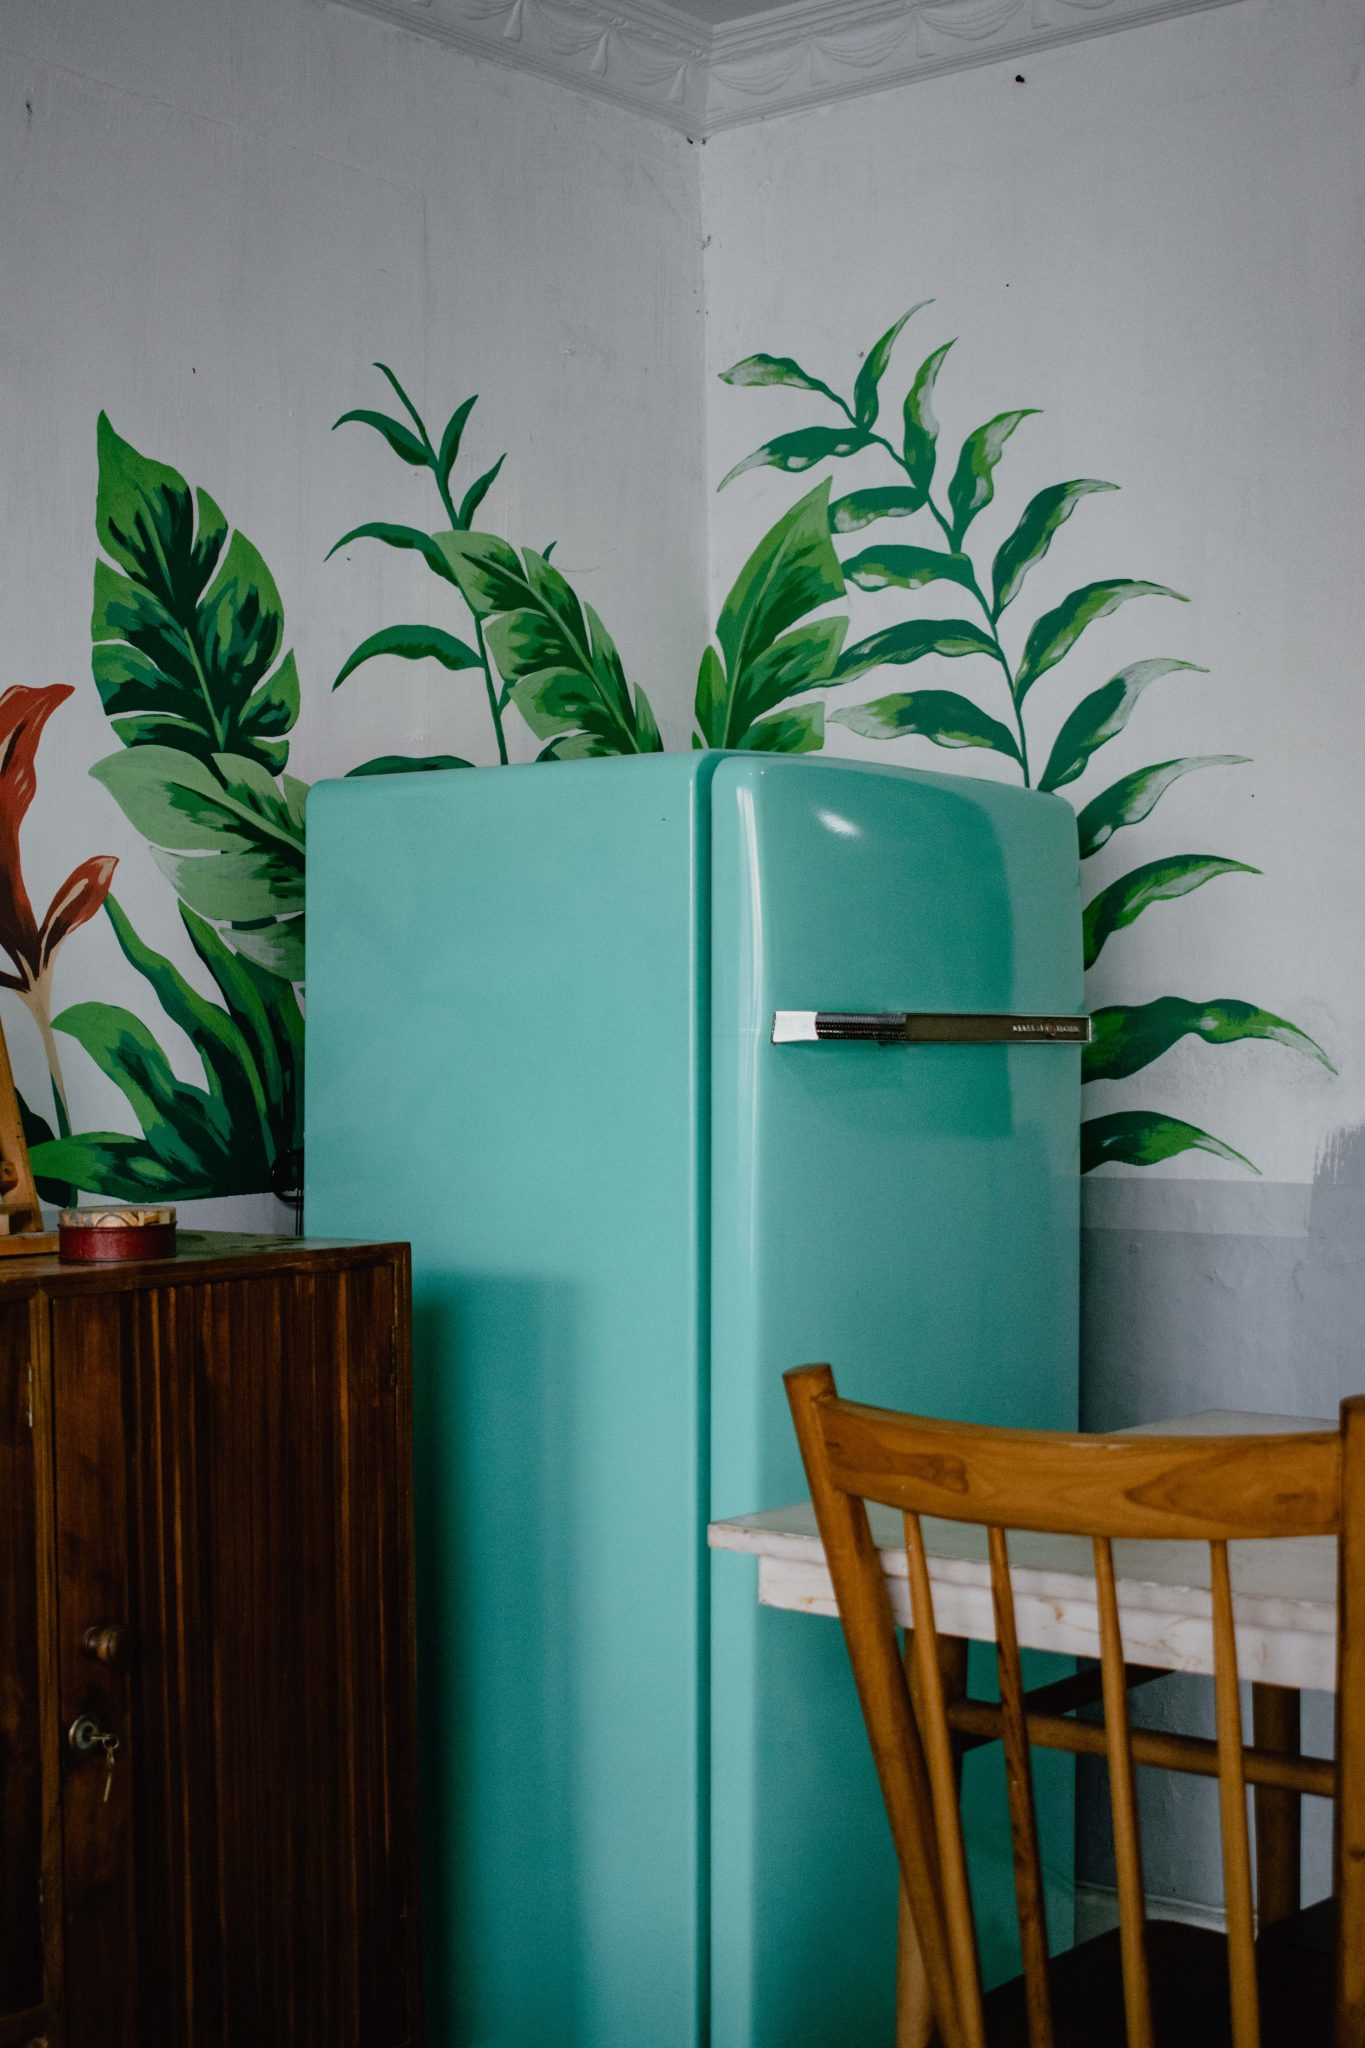 Turquoise Fridge in Kitchen - Overeating when working from home